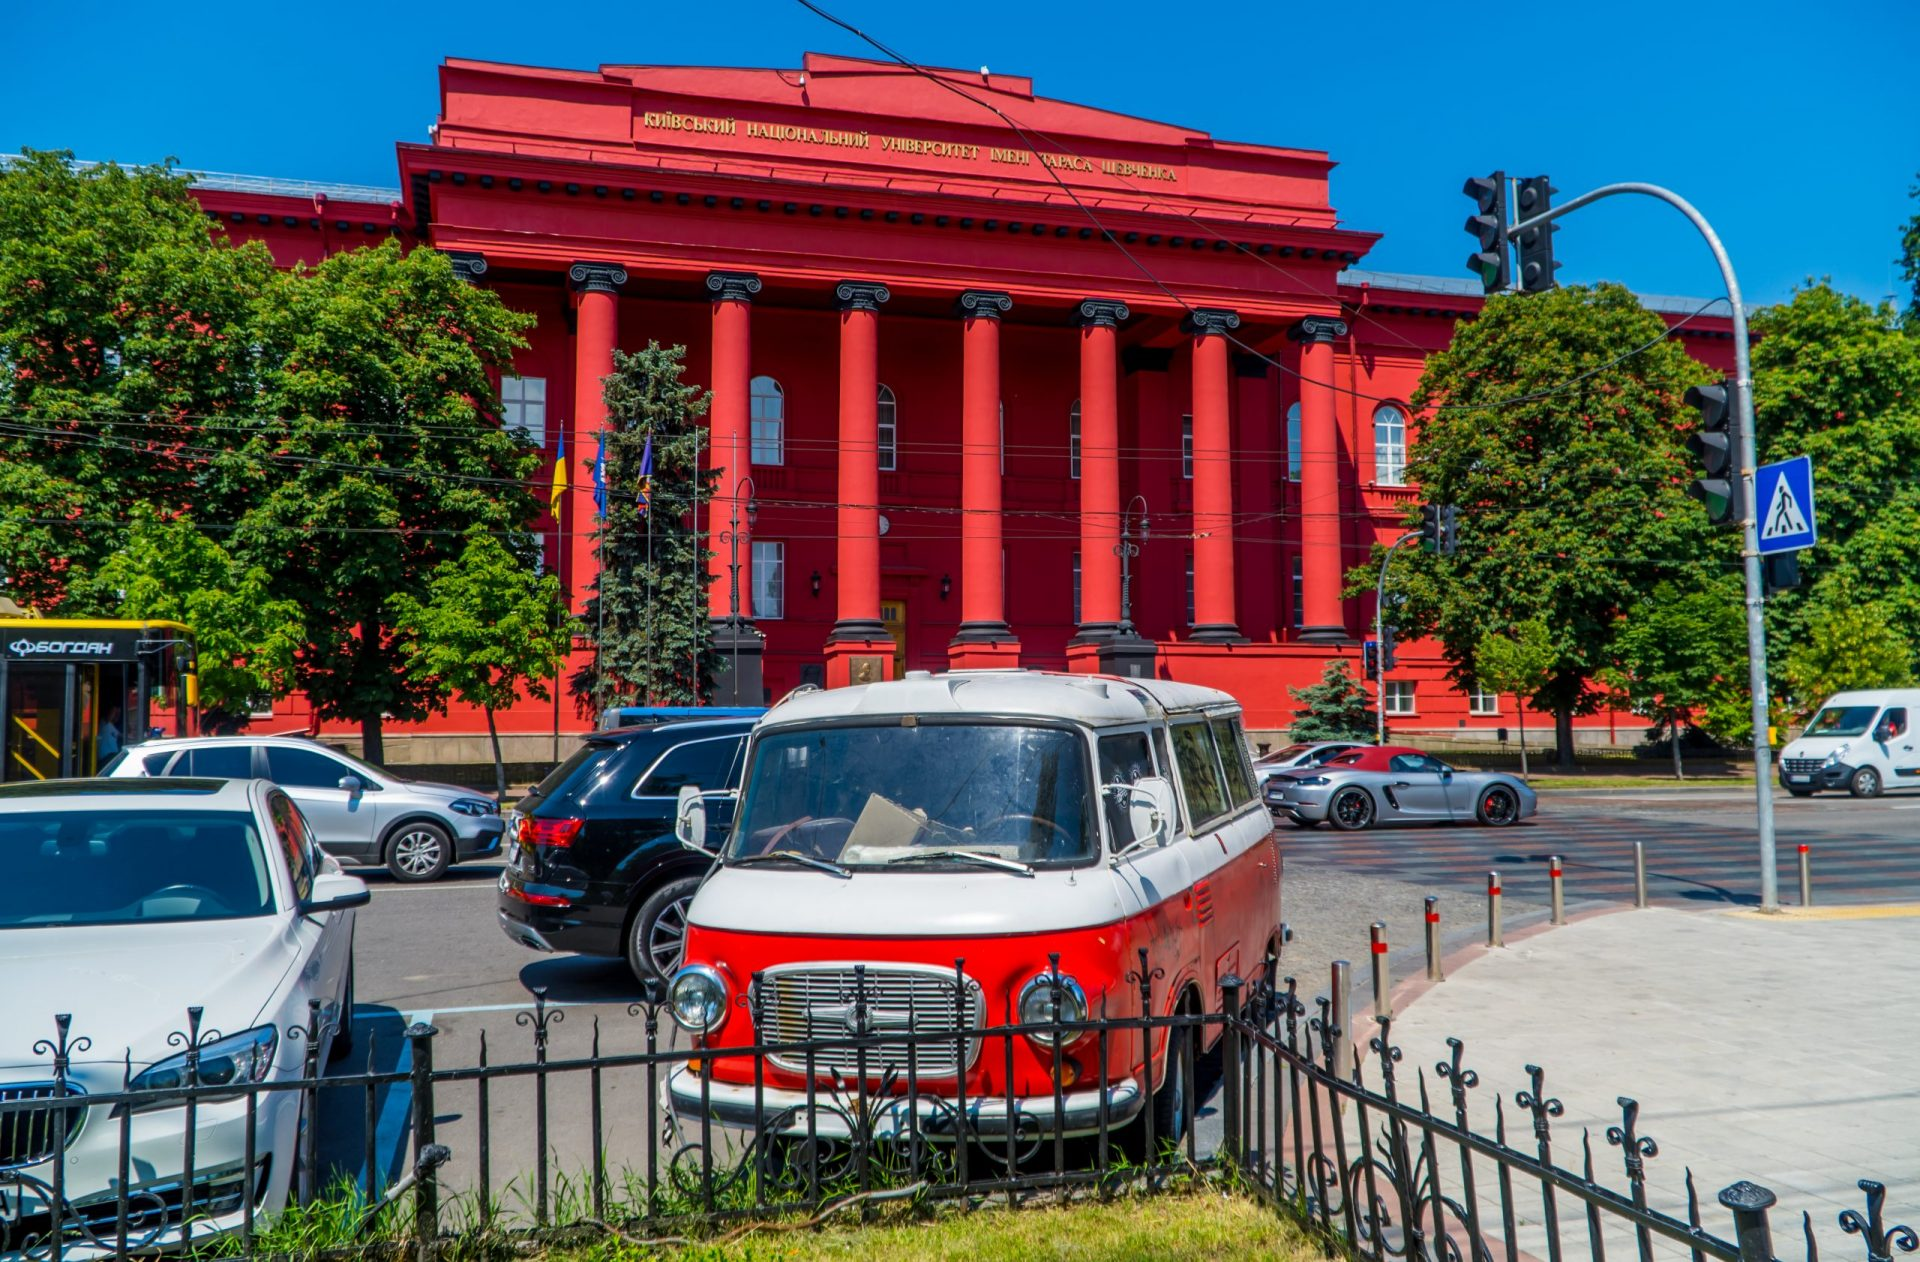 Places to visit in Kiev - Red University